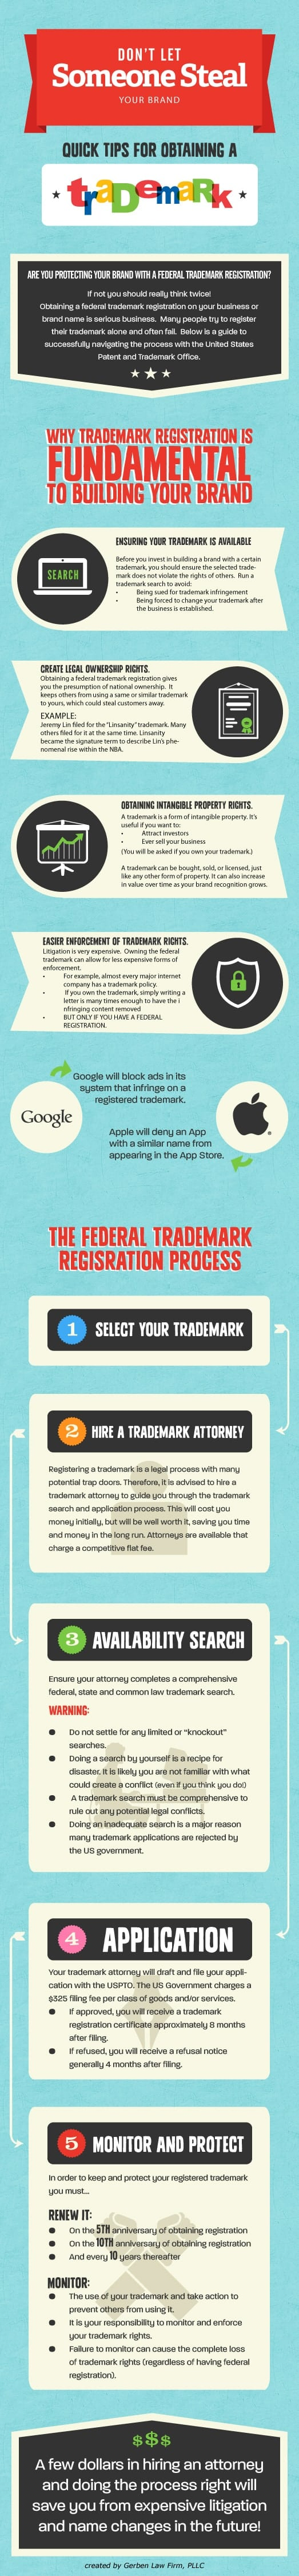 graphic-tips-for-obtaining-trademark